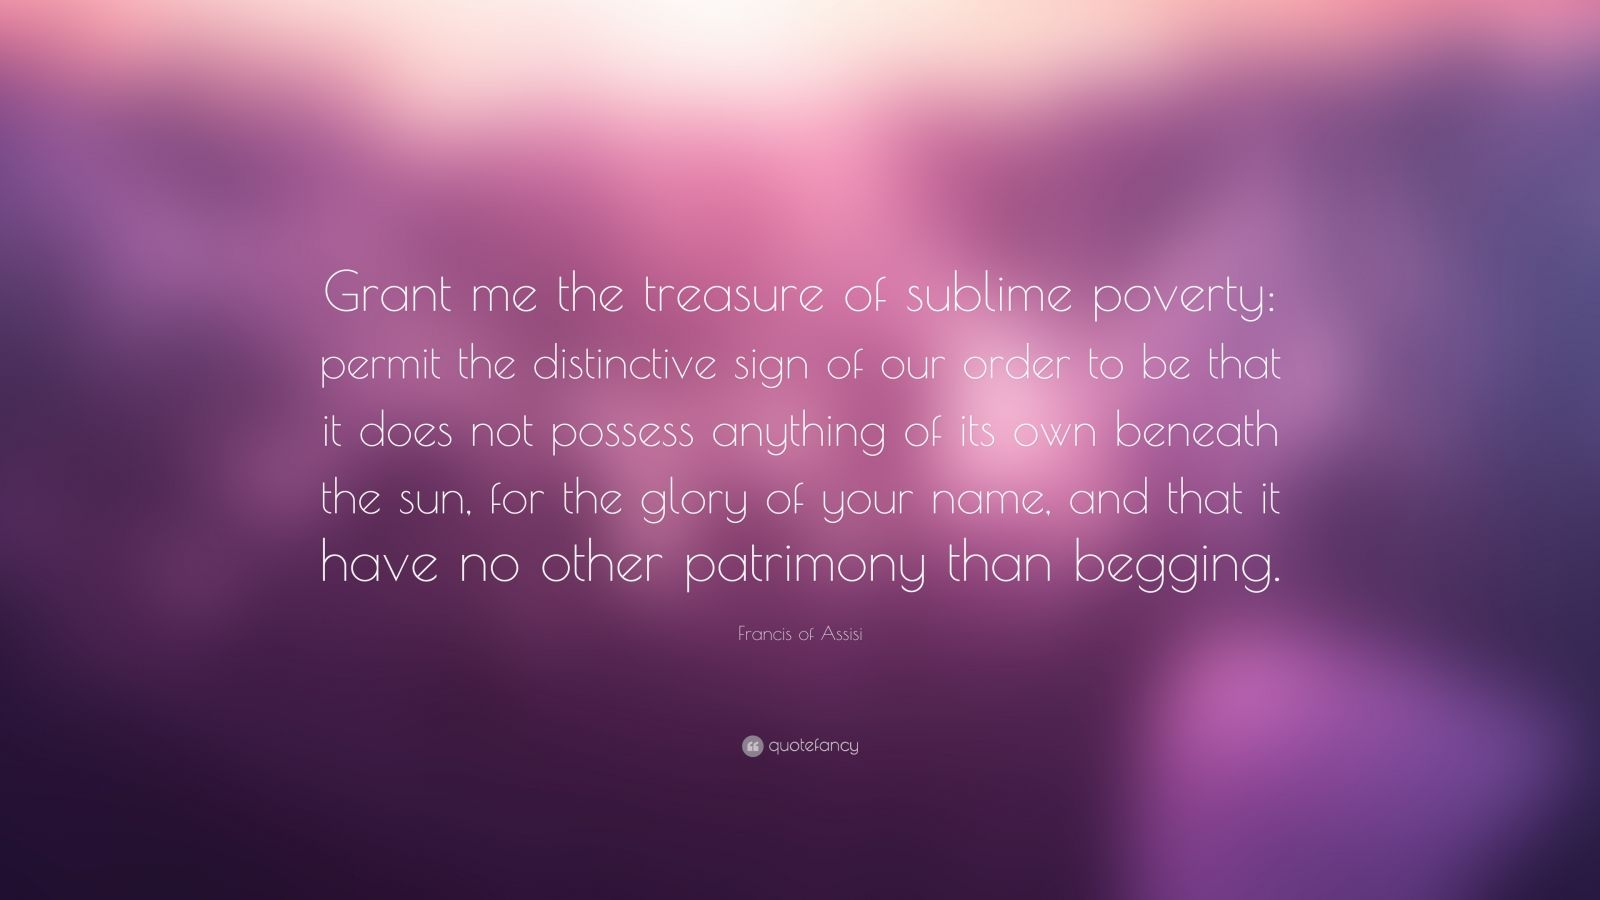 """Francis of Assisi Quote: """"Grant me the treasure of sublime poverty: permit the distinctive sign of our order to be that it does not possess anything of its own beneath the sun, for the glory of your name, and that it have no other patrimony than begging."""""""